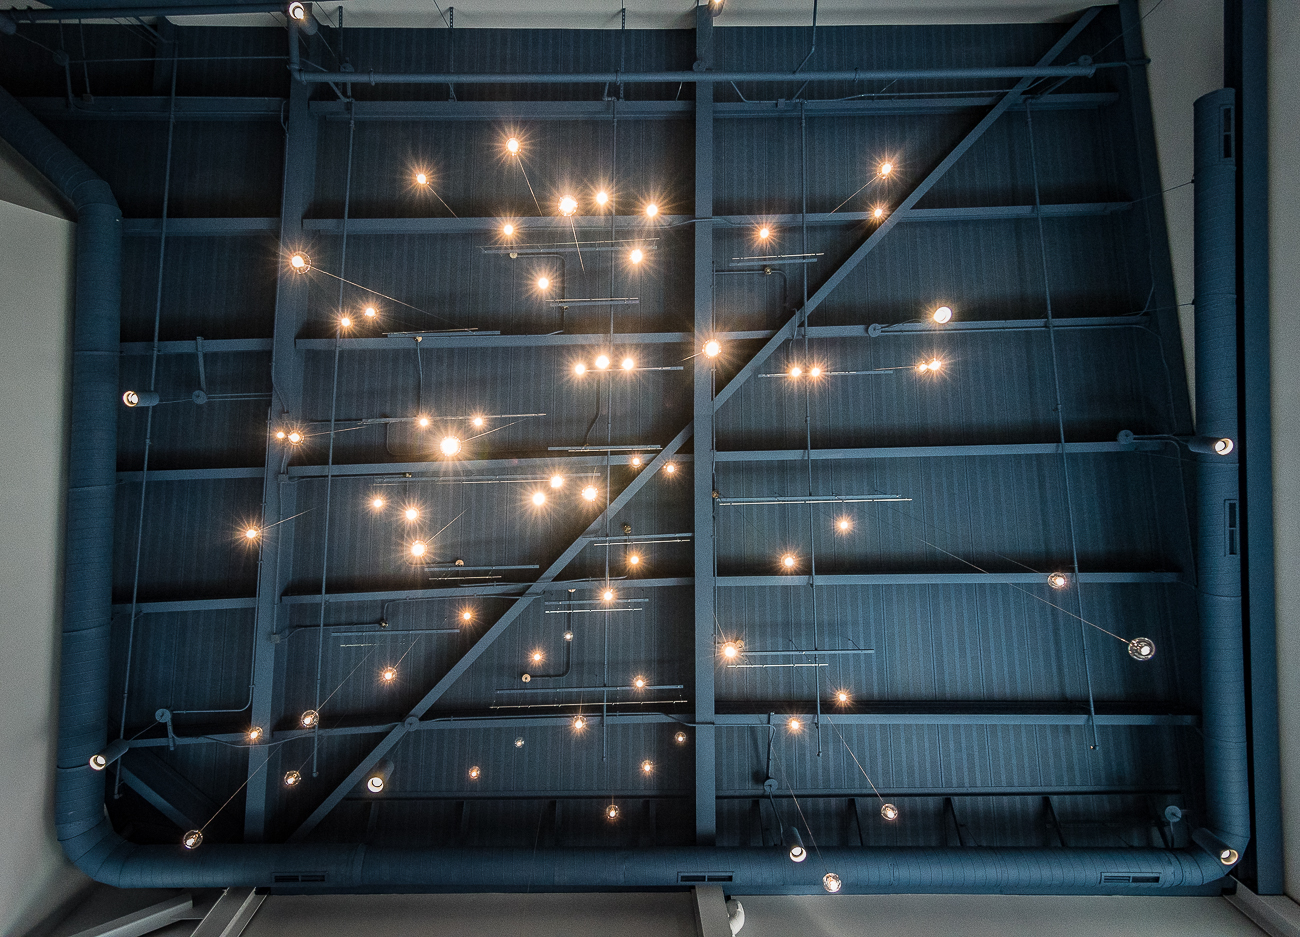 The arrangement of lights above the lobby's 2-story atrium represents being outdoors beneath a darkened sky pin-pricked with starlight. / Image: Phil Armstrong, Cincinnati Refined // Published: 9.7.17